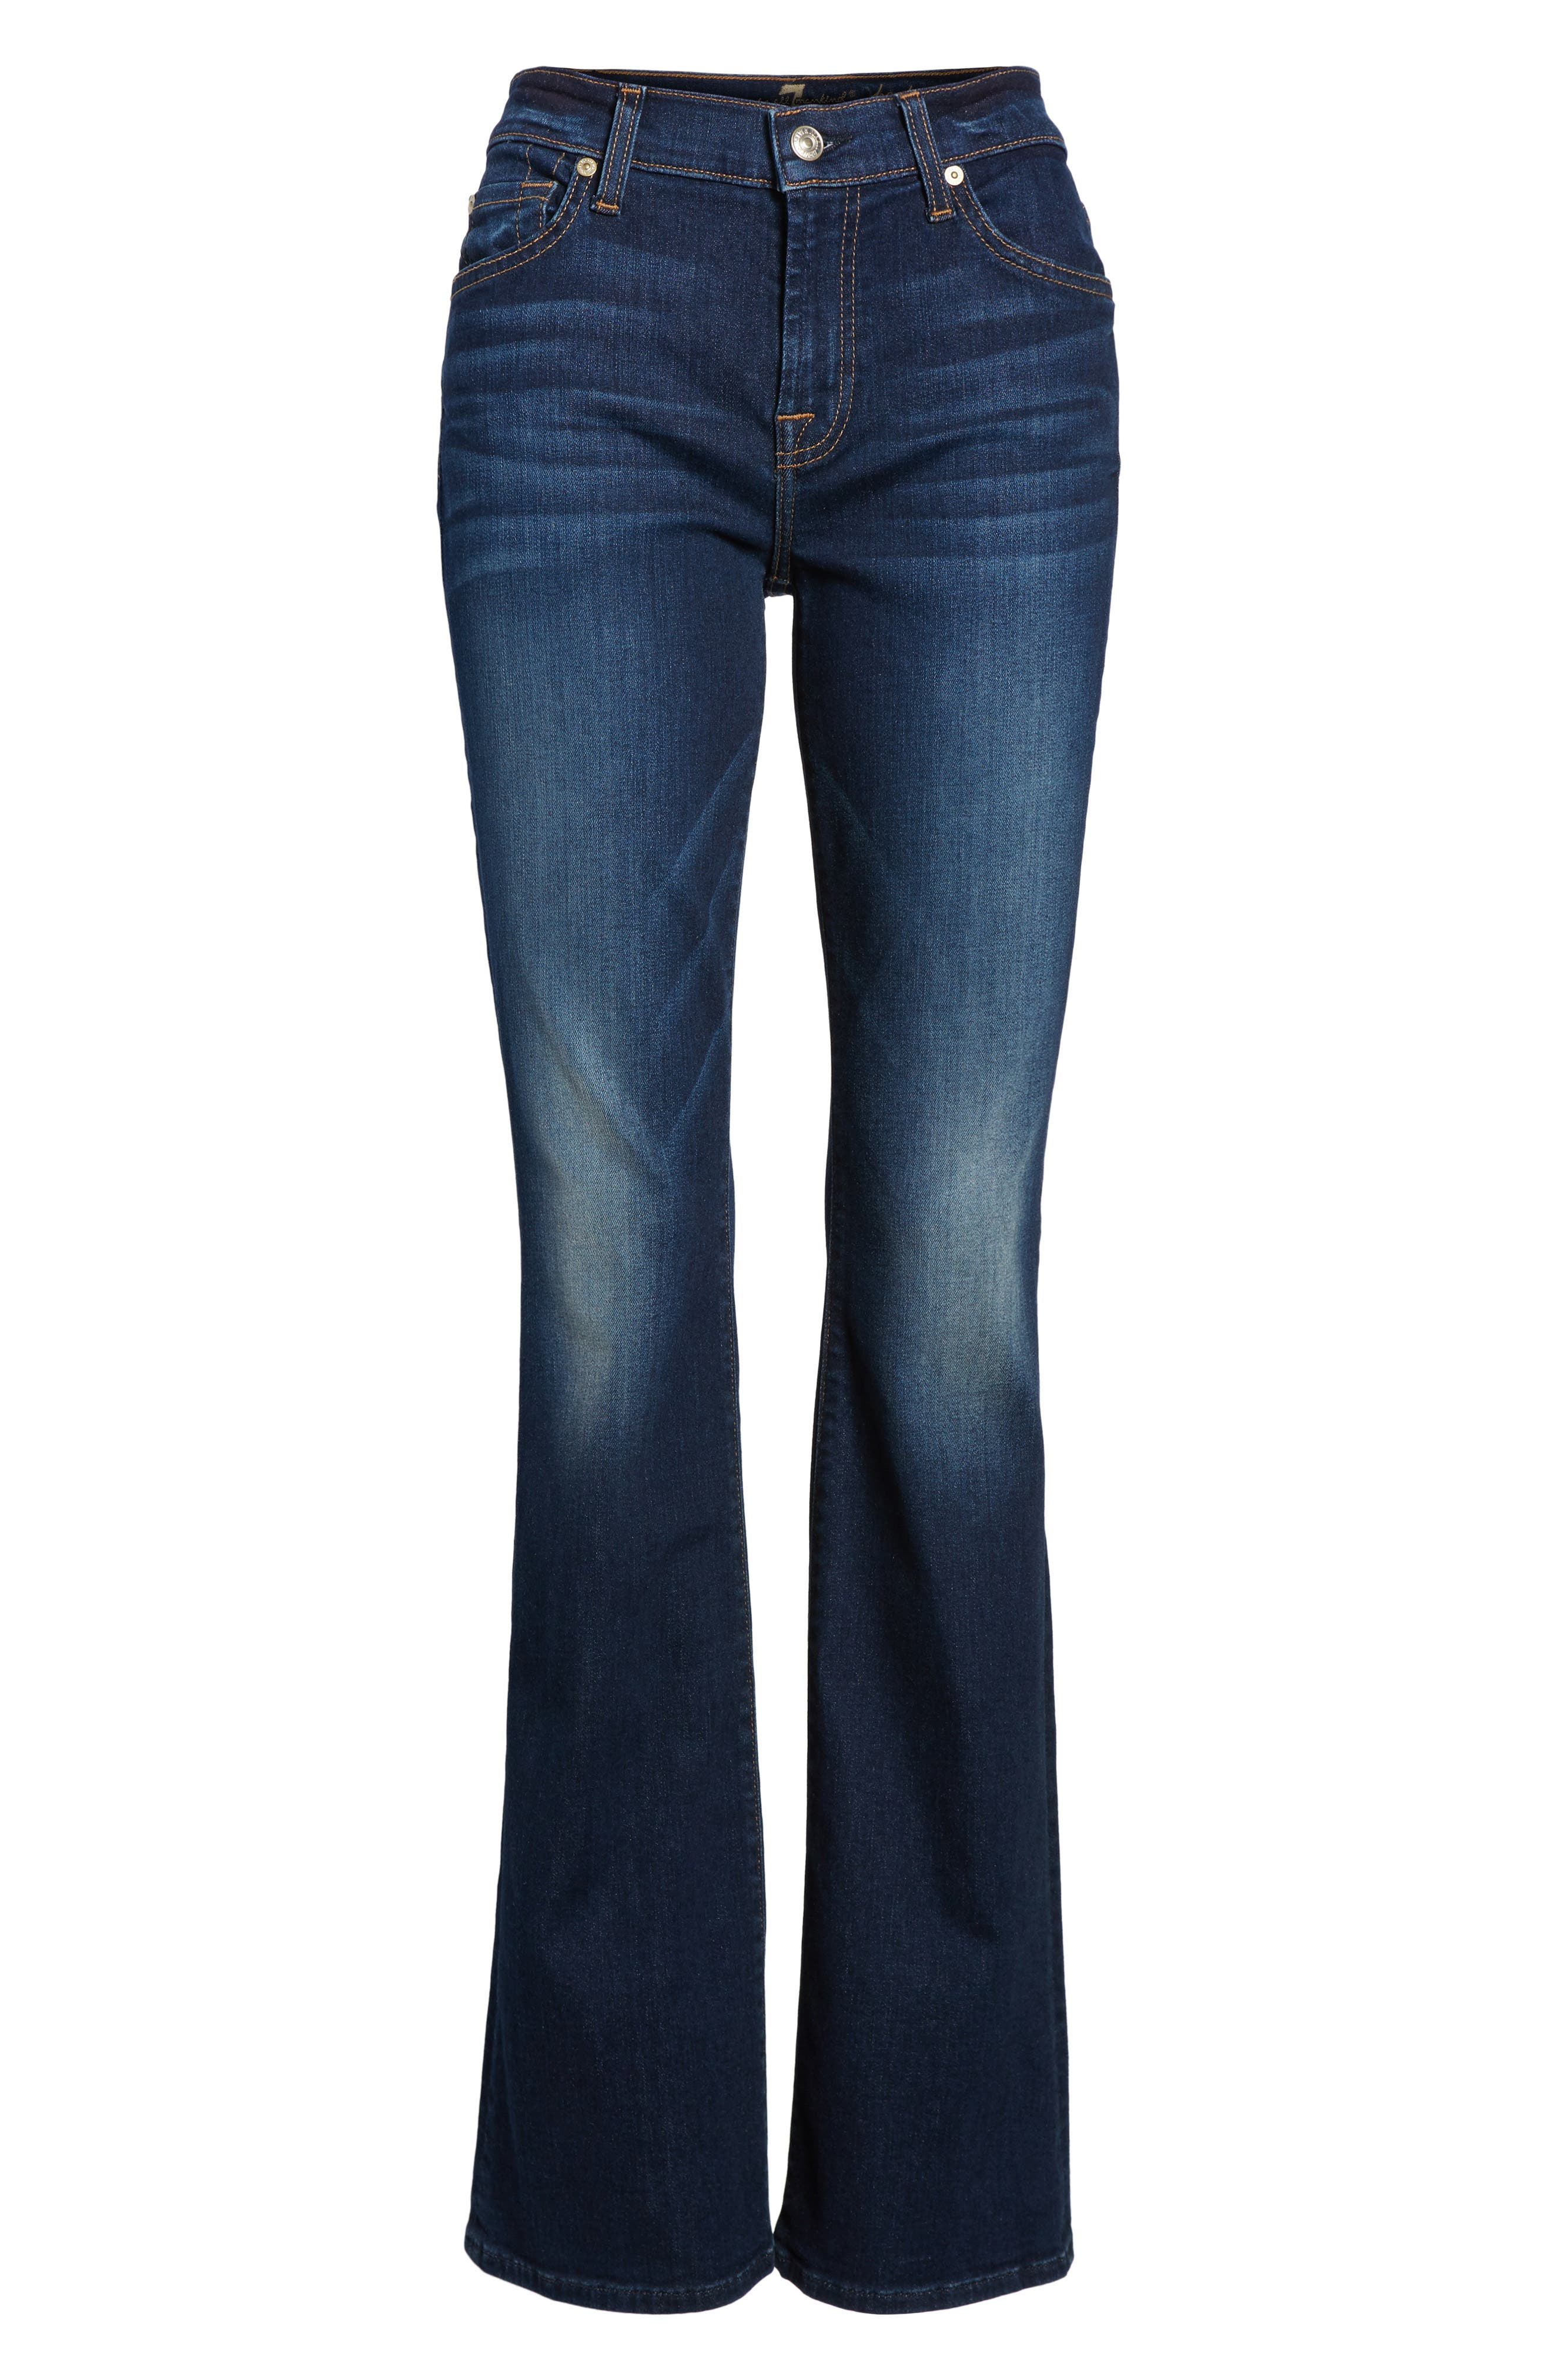 7 FOR ALL MANKIND<SUP>®</SUP>, b(air) Tailorless Iconic Bootcut Jeans, Alternate thumbnail 7, color, MORENO